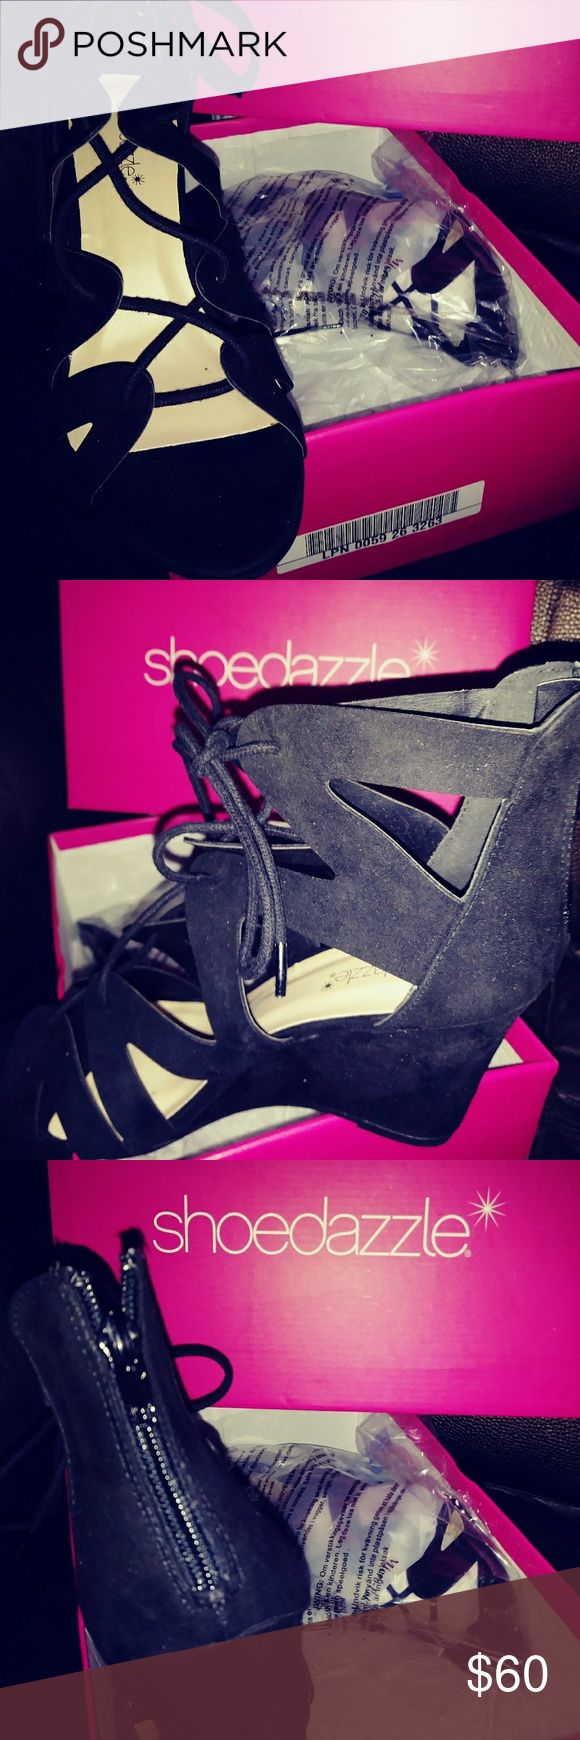 Brand New Bkack suade sandels. Zipper back Beautiful black suede sandals lace front zipper in the back size seven and a half number one brand new from ShoeDazzle I paid $69 and I'm selling them for 60 dollars. I ordered the wrong size I love them I wish they fit Shoe Dazzel Shoes Sandals